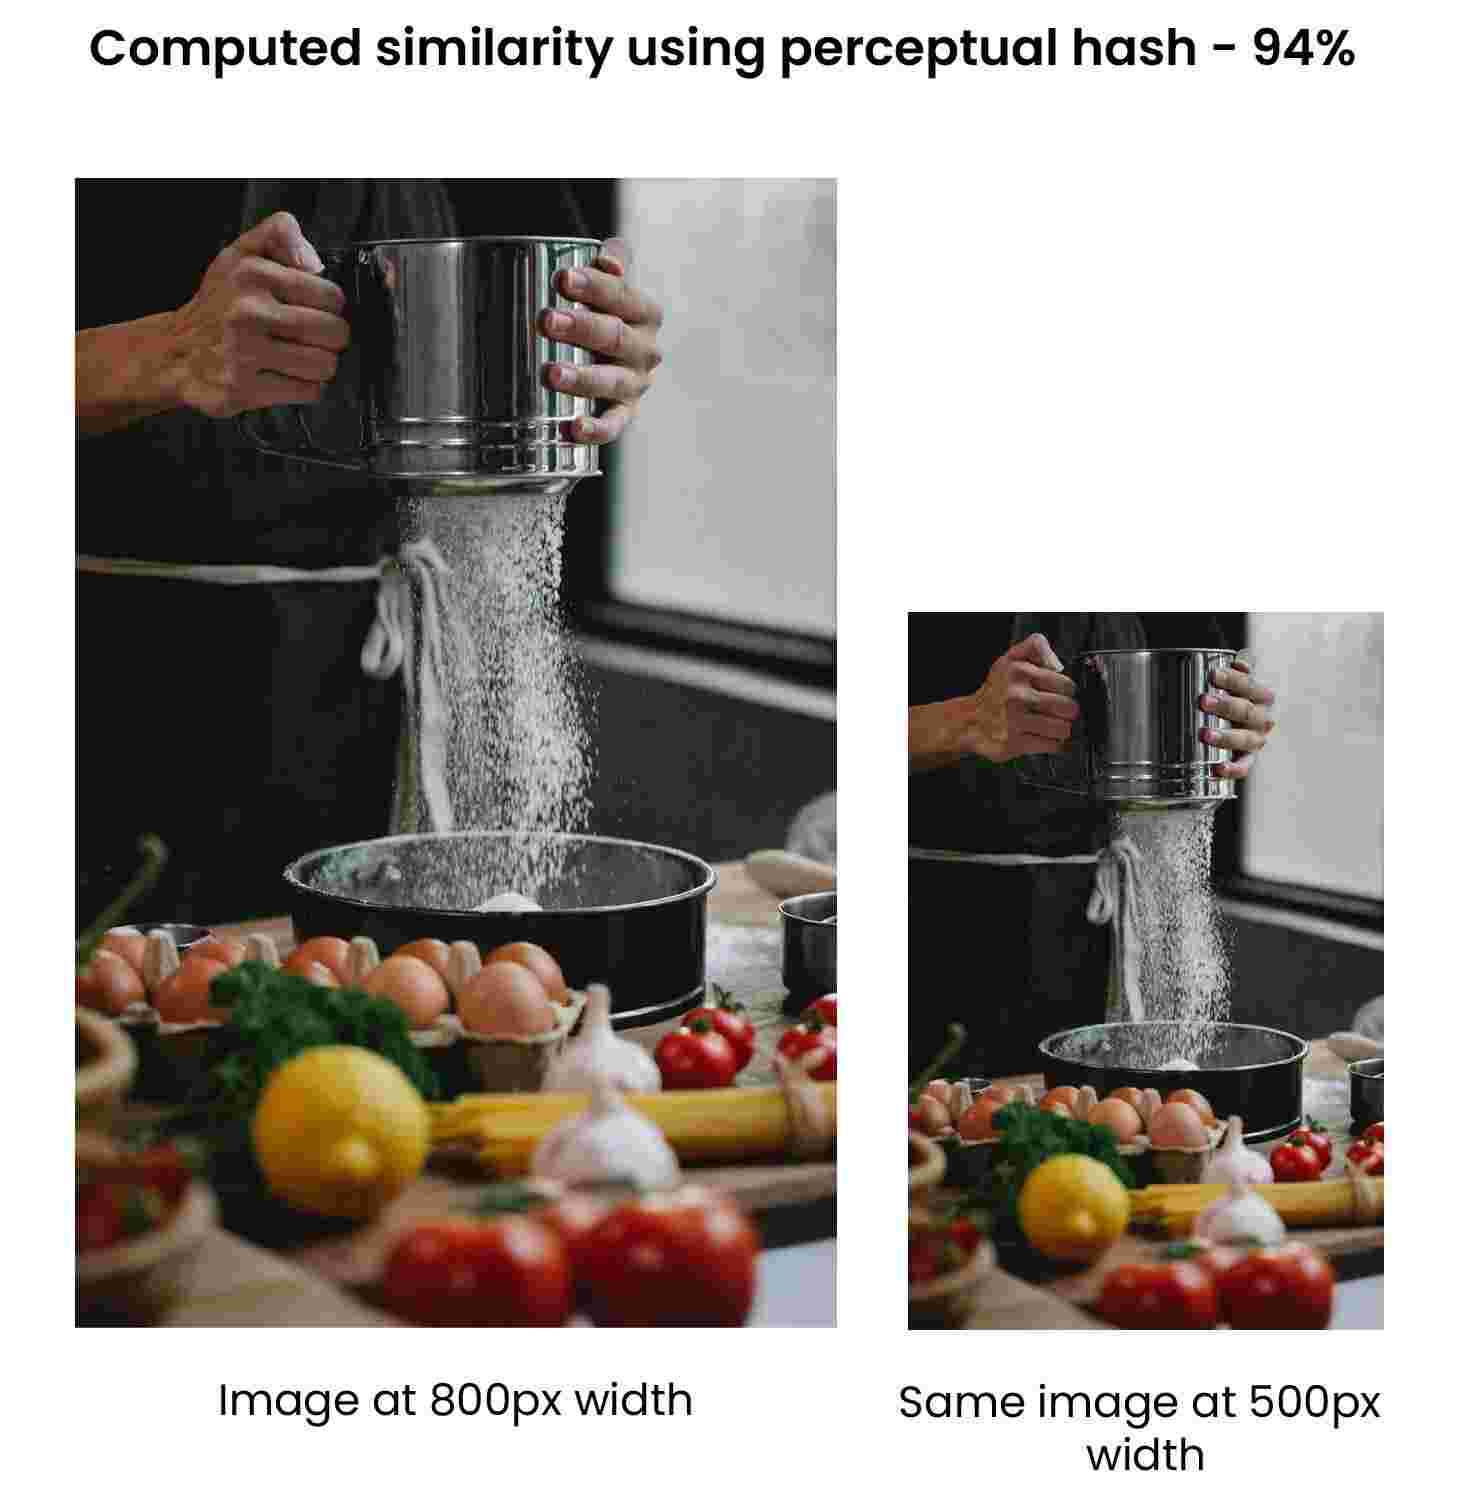 Two identical images at different dimensions are marked as 94% similar by ImageKit